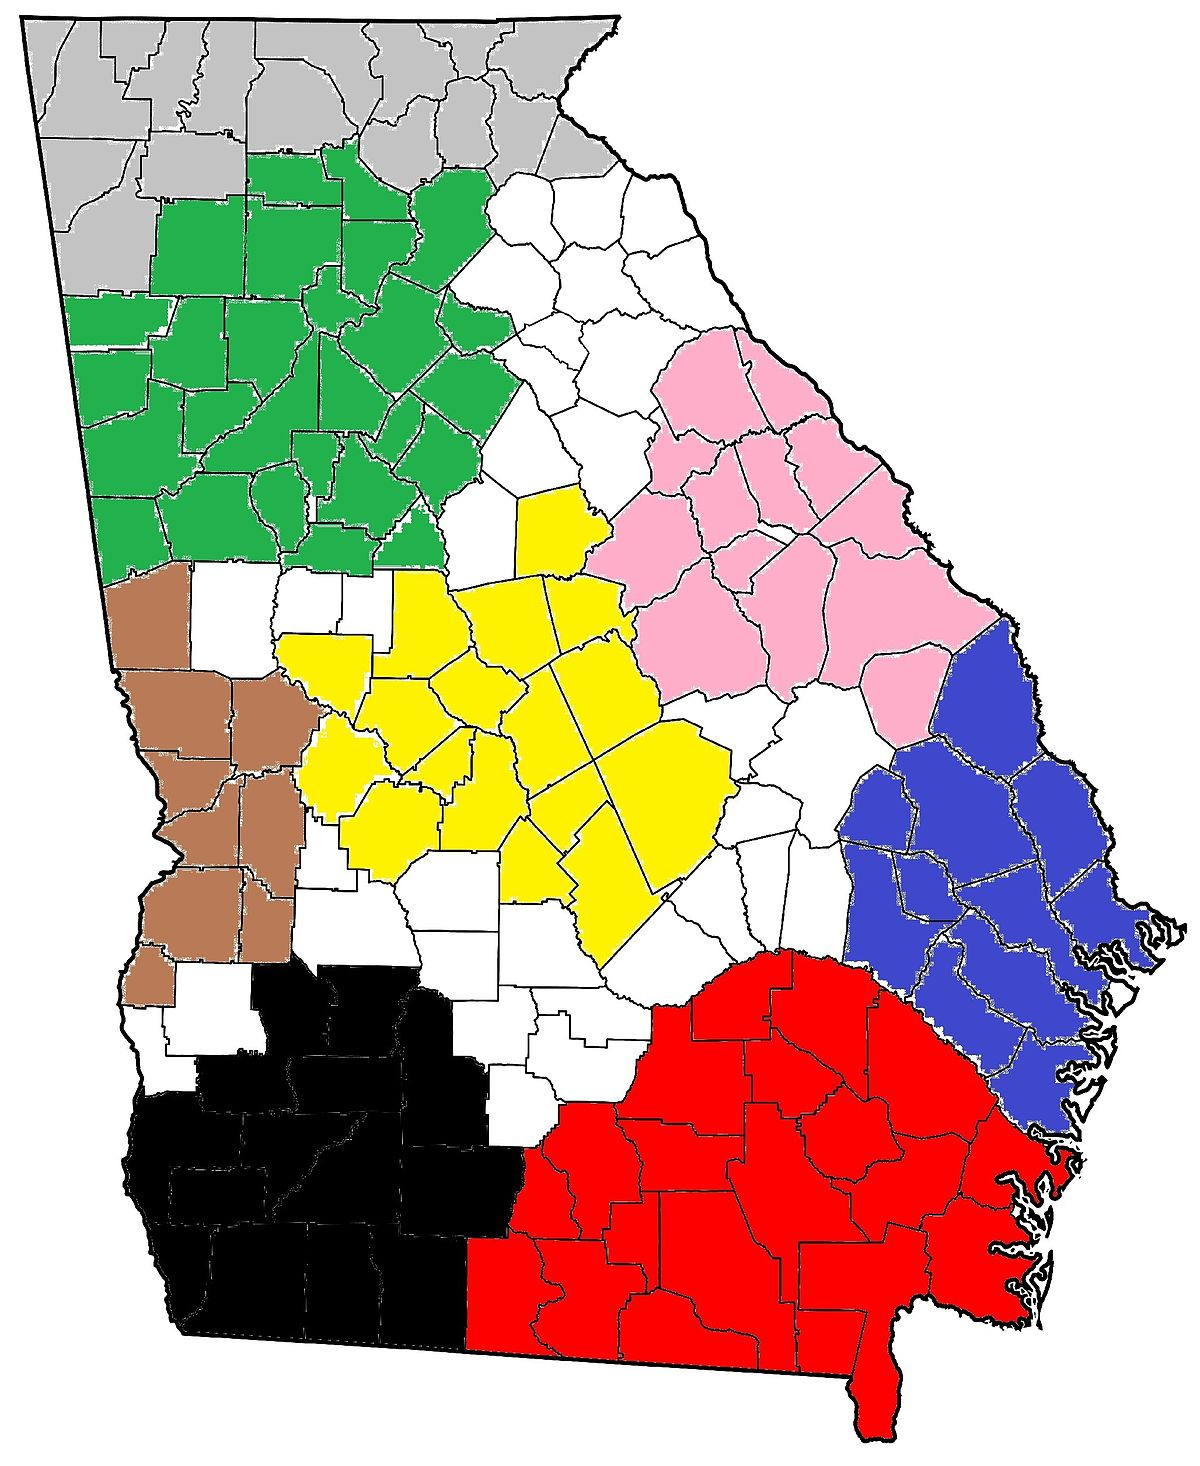 Southwest Georgia Wikipedia - Georgia map with regions